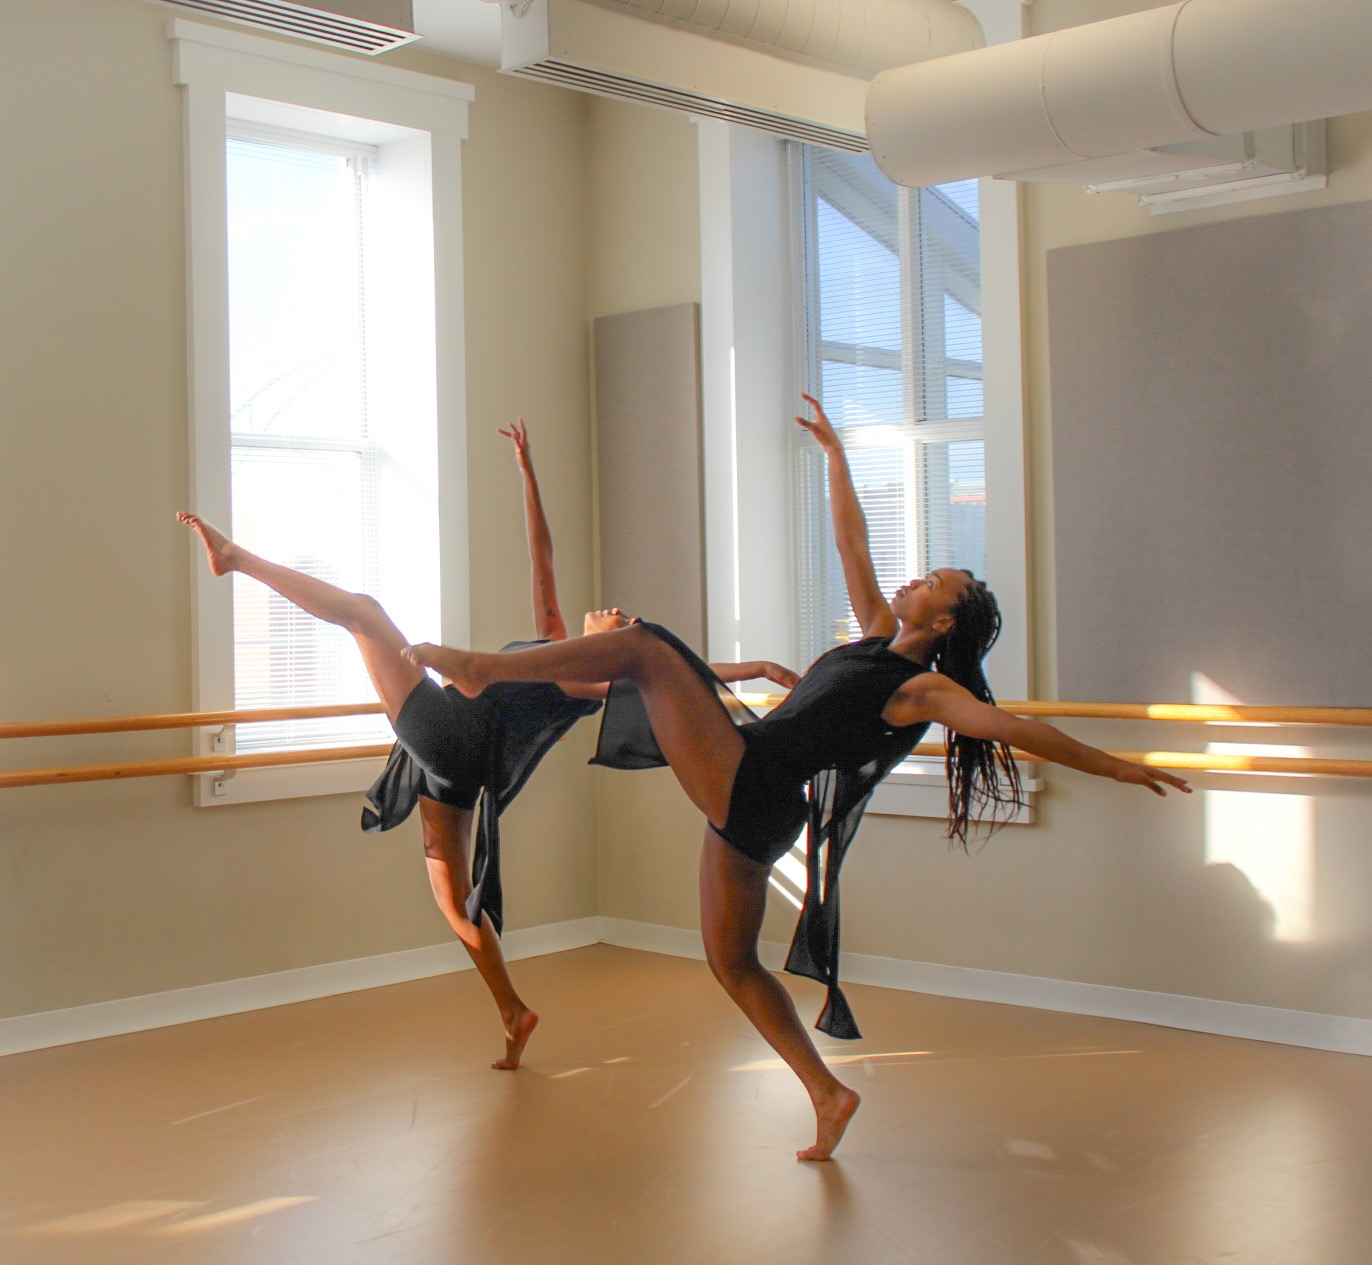 Two women dressed in black shorts and flowing tops dance in the corner of a clean dance studio in front of windows